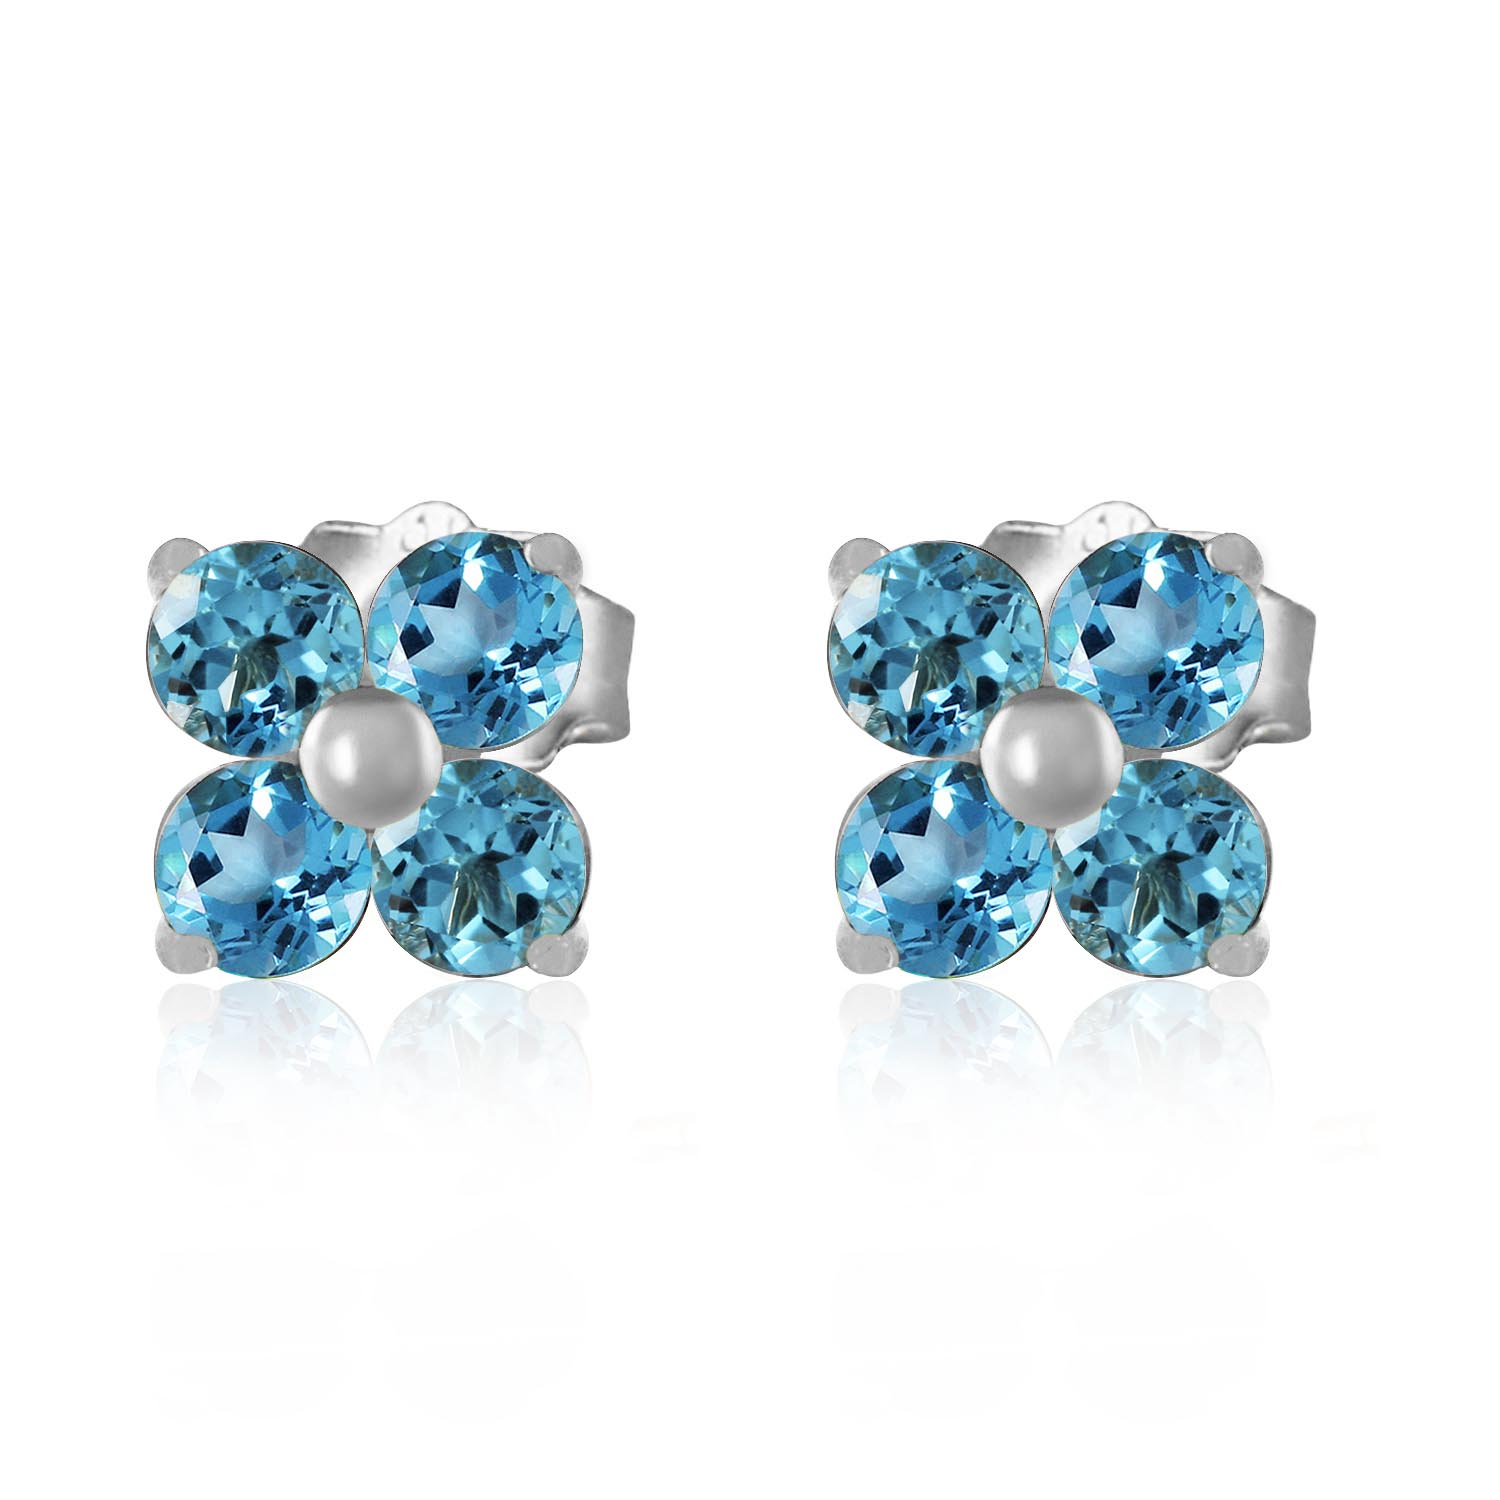 Blue Topaz Clover Stud Earrings 1.15ctw in 9ct White Gold